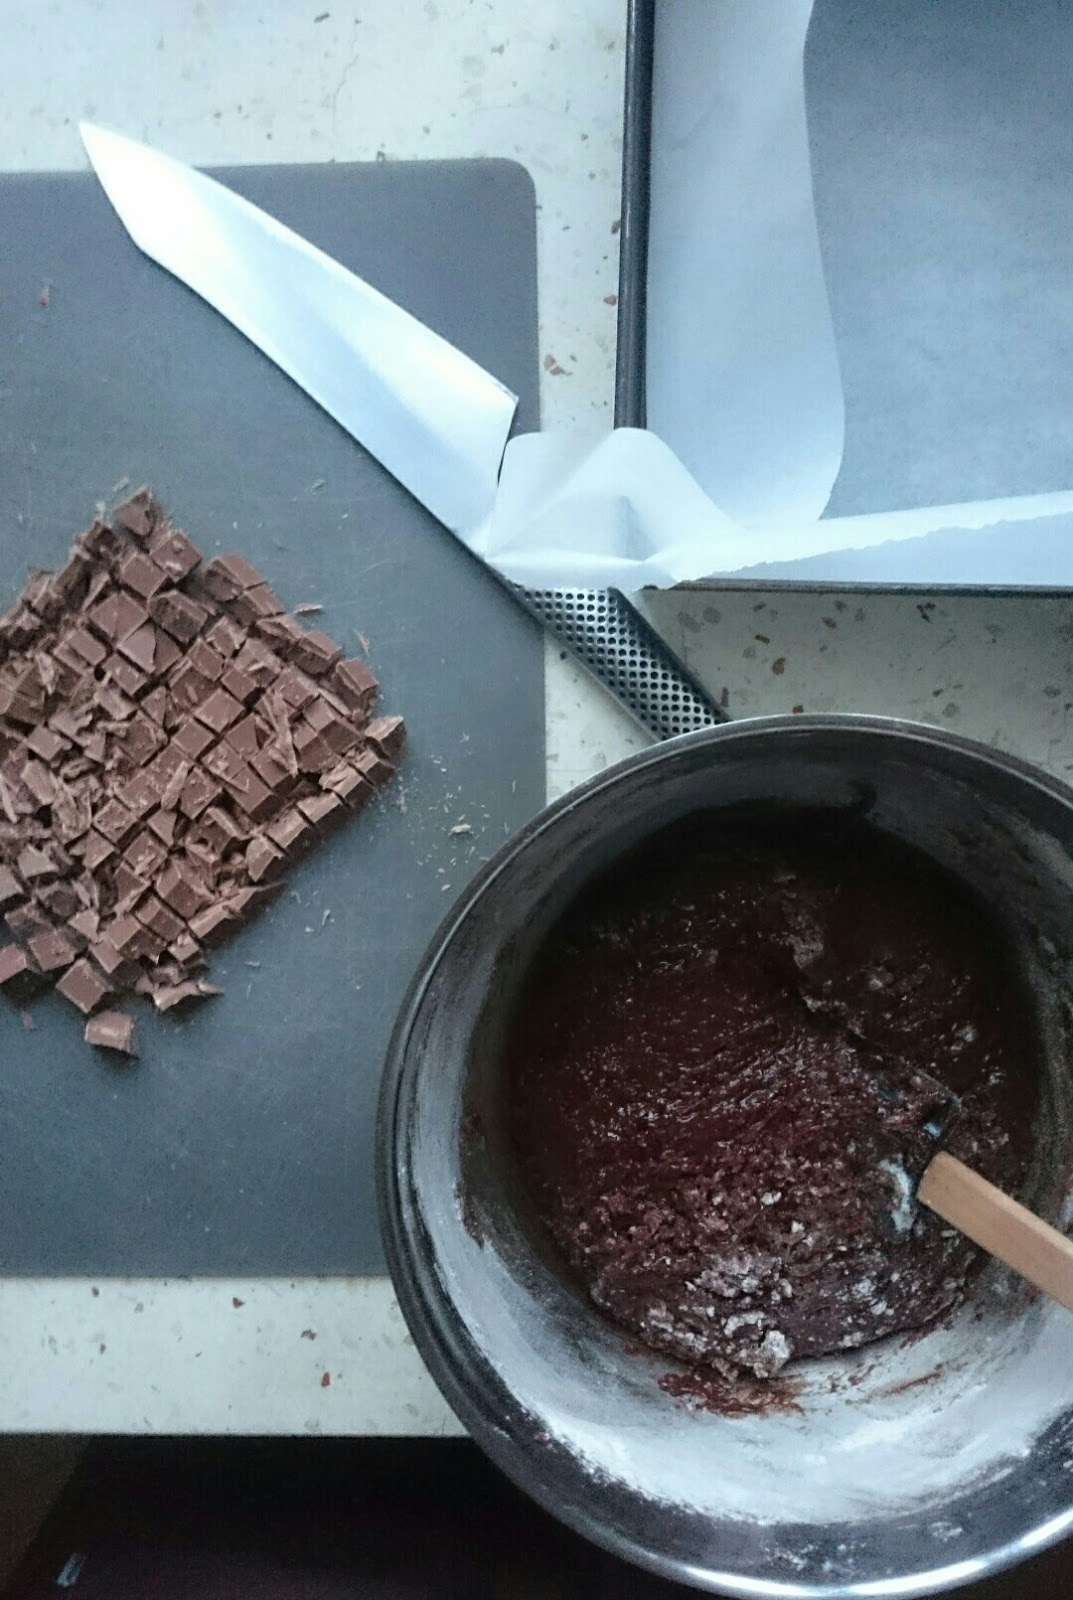 Food & Thoughts: A Year of Brownies